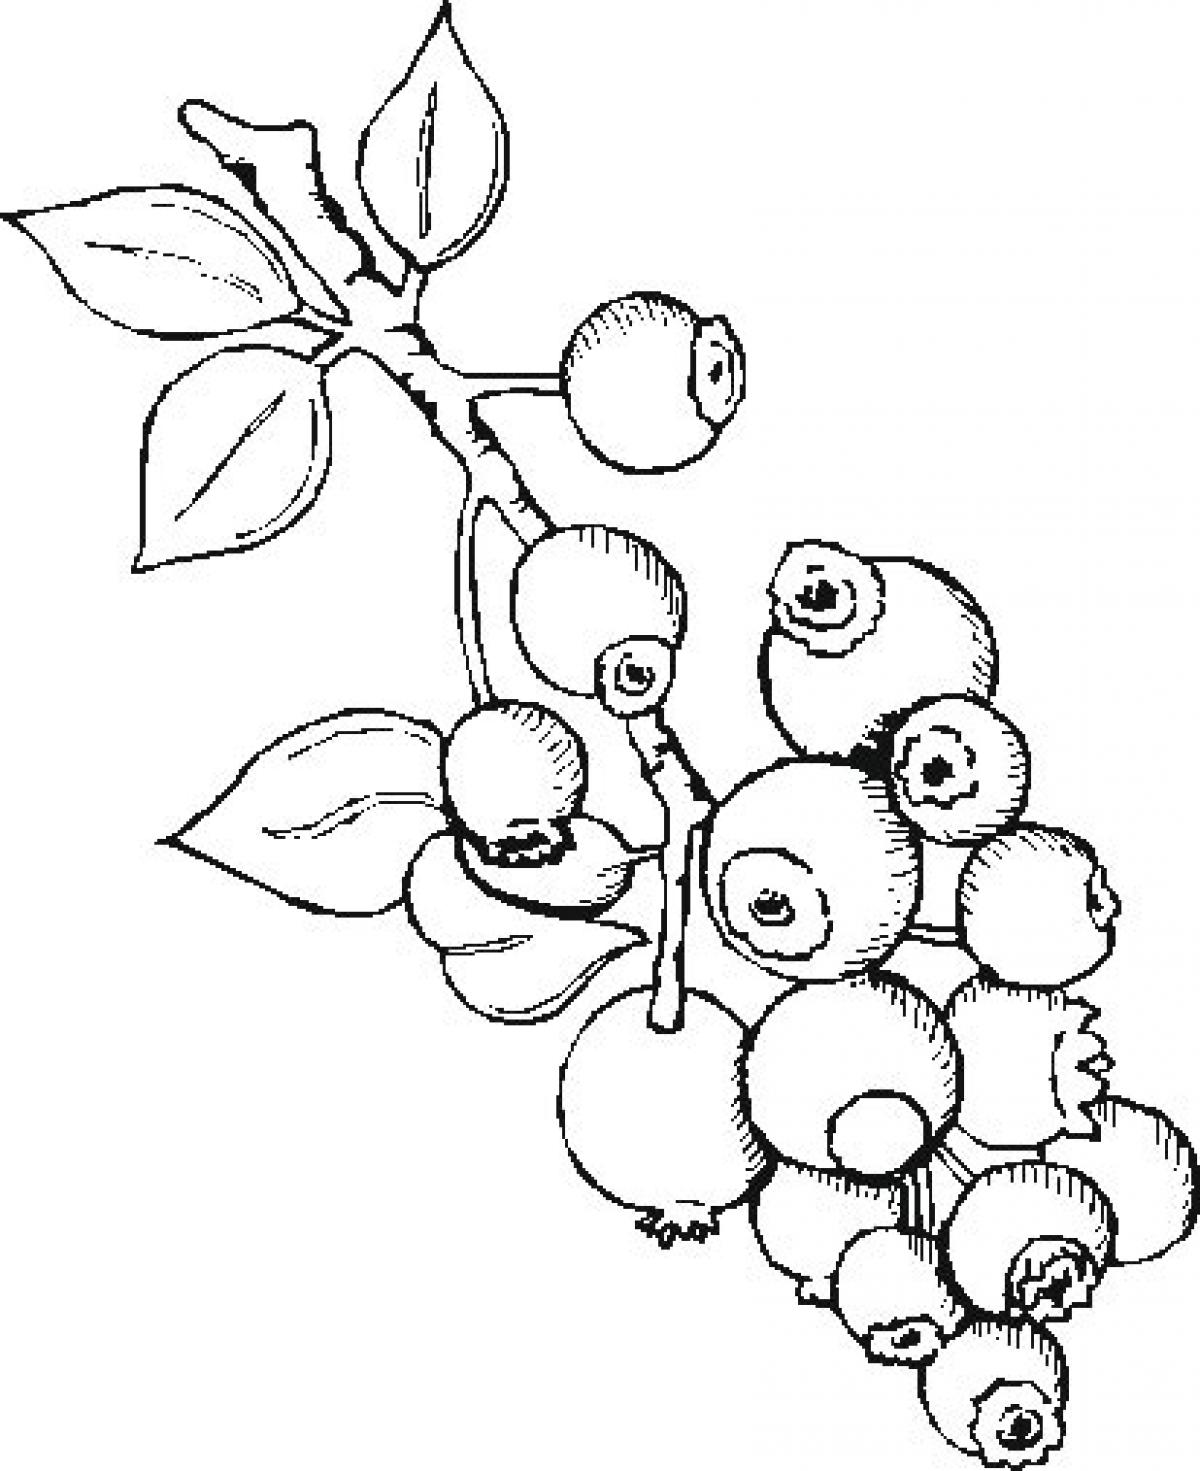 Cozy Blueberries Clipart Black And White Clip Art Images